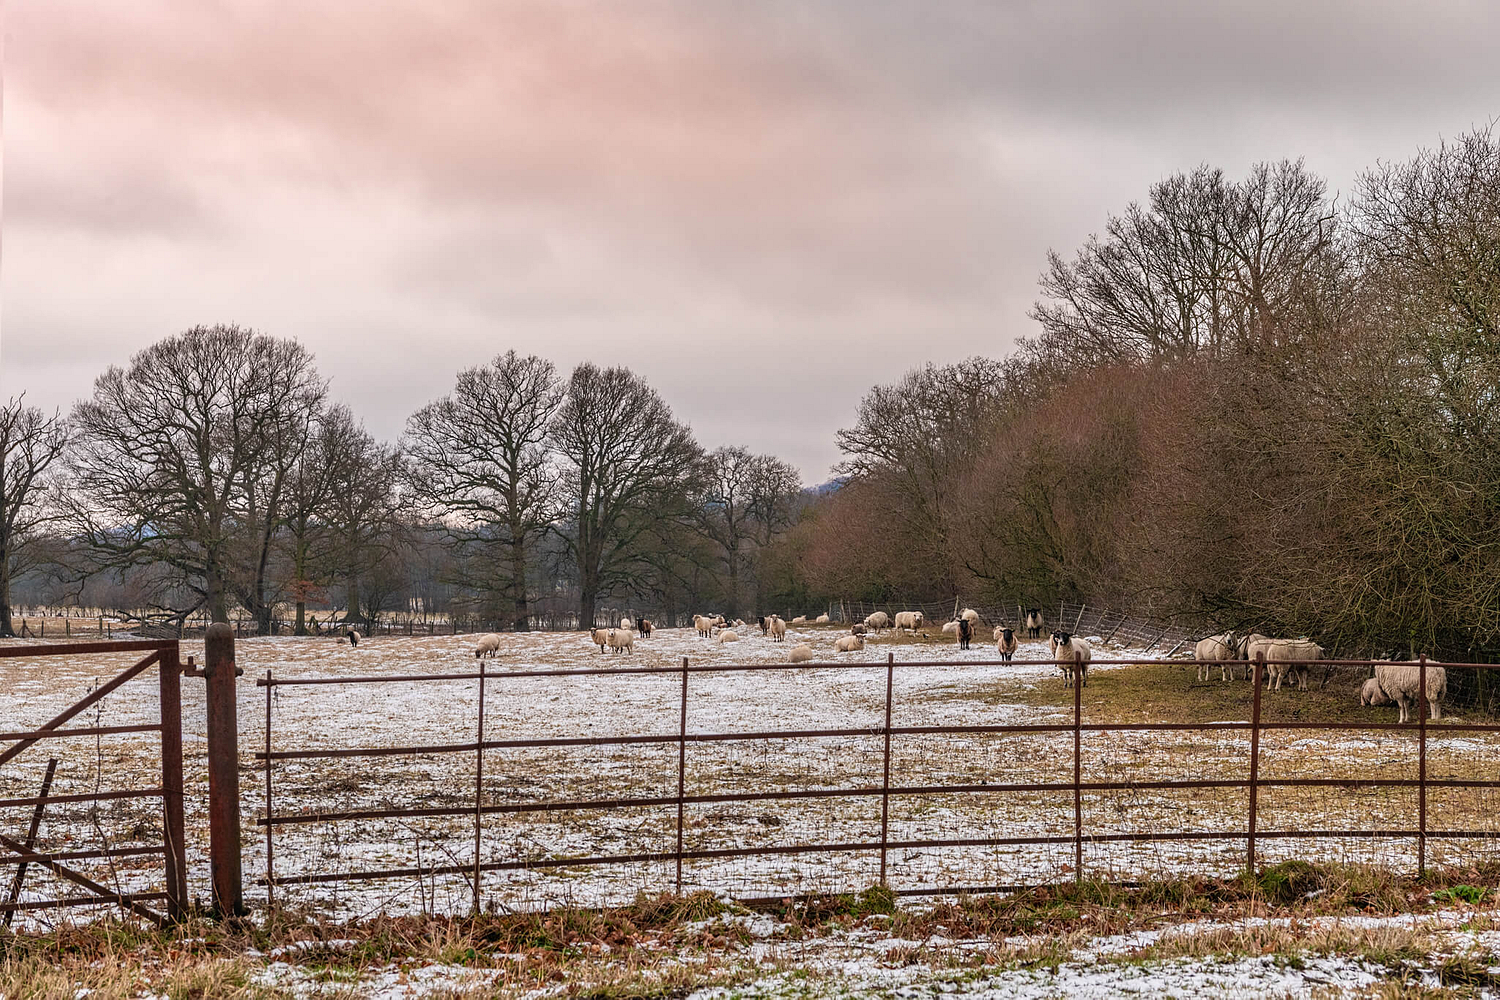 Sheep in the snow, Surrey countryside